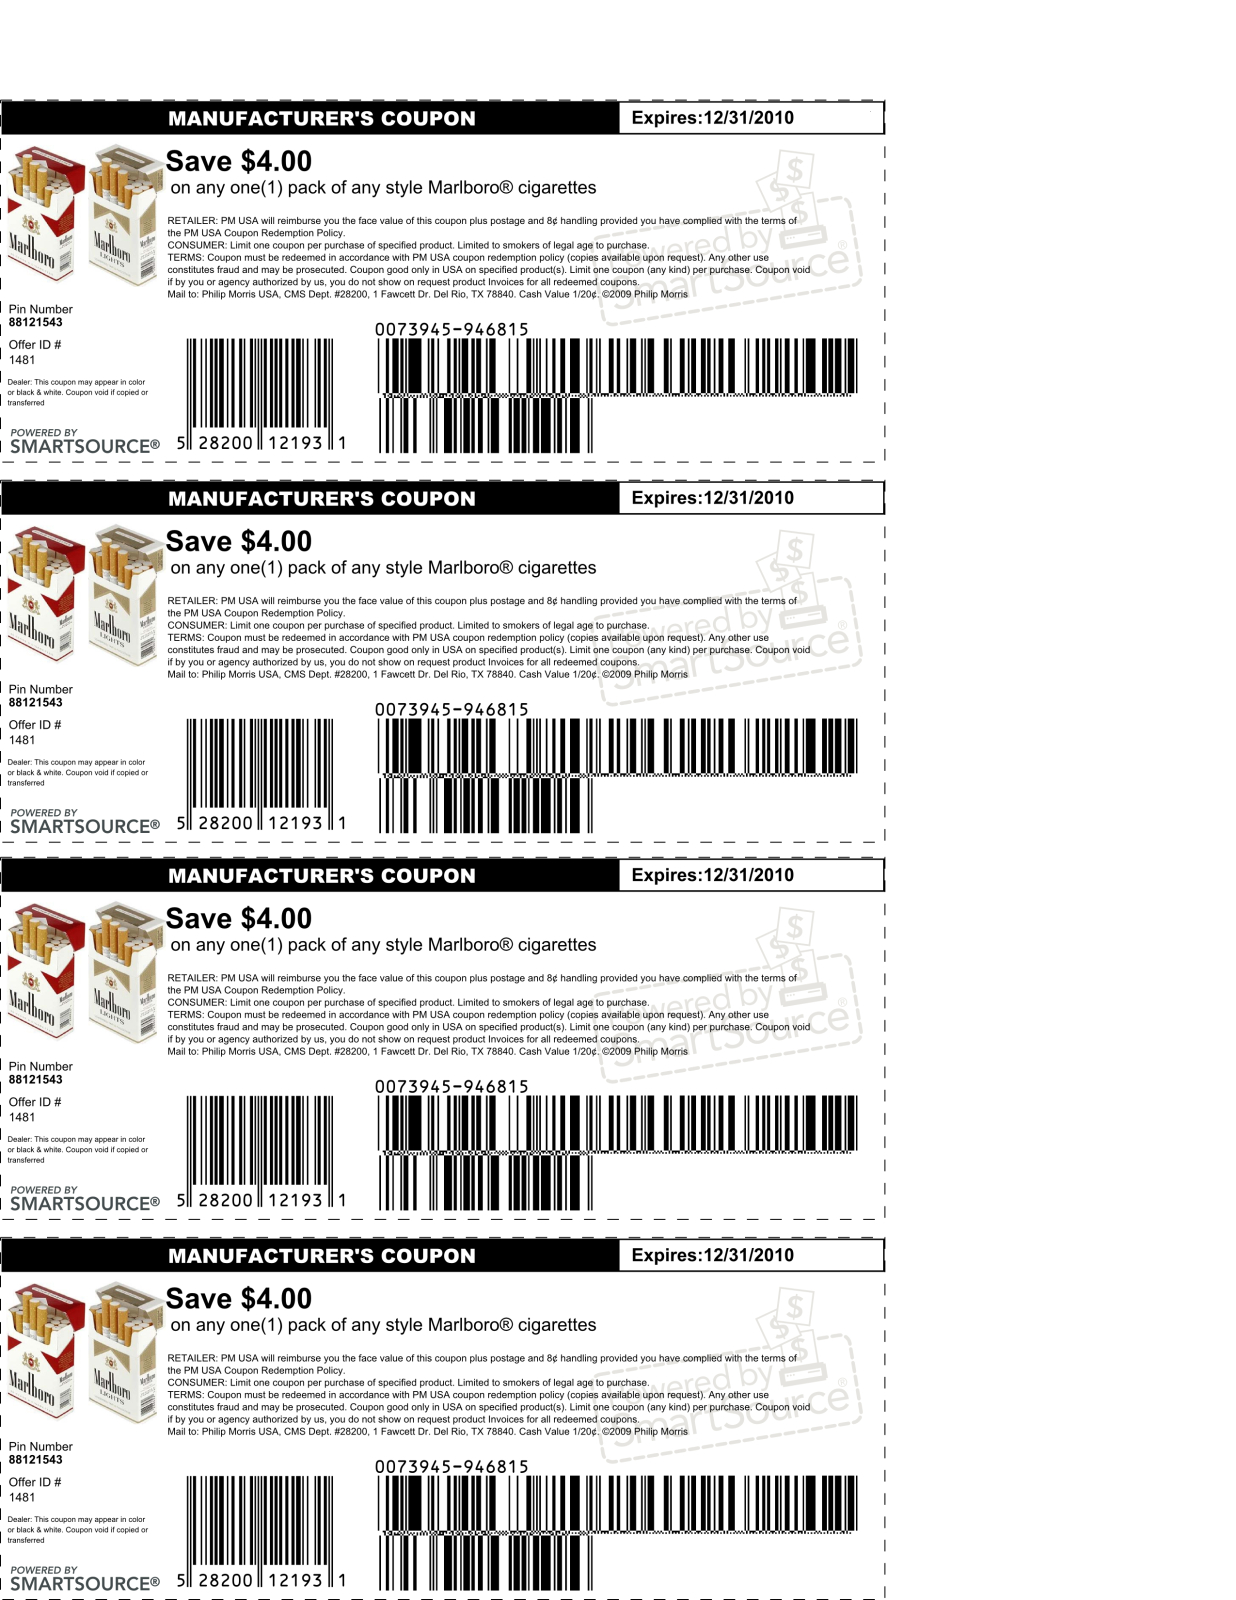 image about Printable Marlboro Coupons named Common $2.50 Off Coupon That Will work For Any Style Of